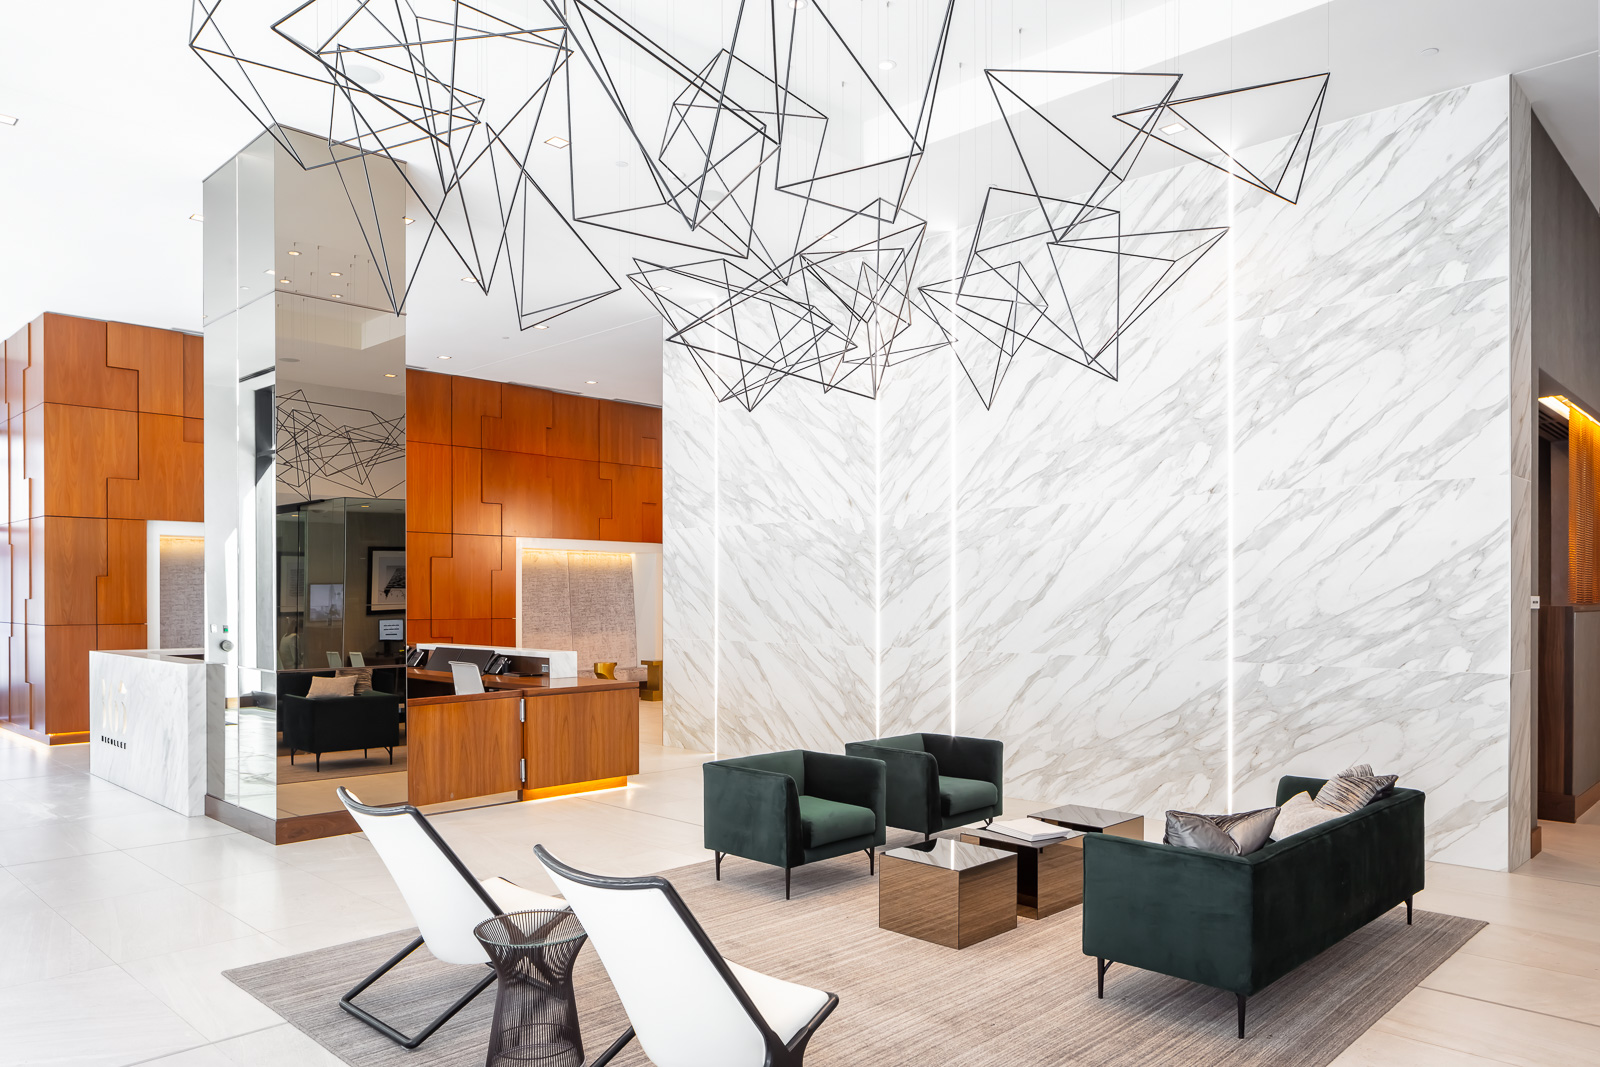 ygd_365 Nicollet_custom triangle_01_lores